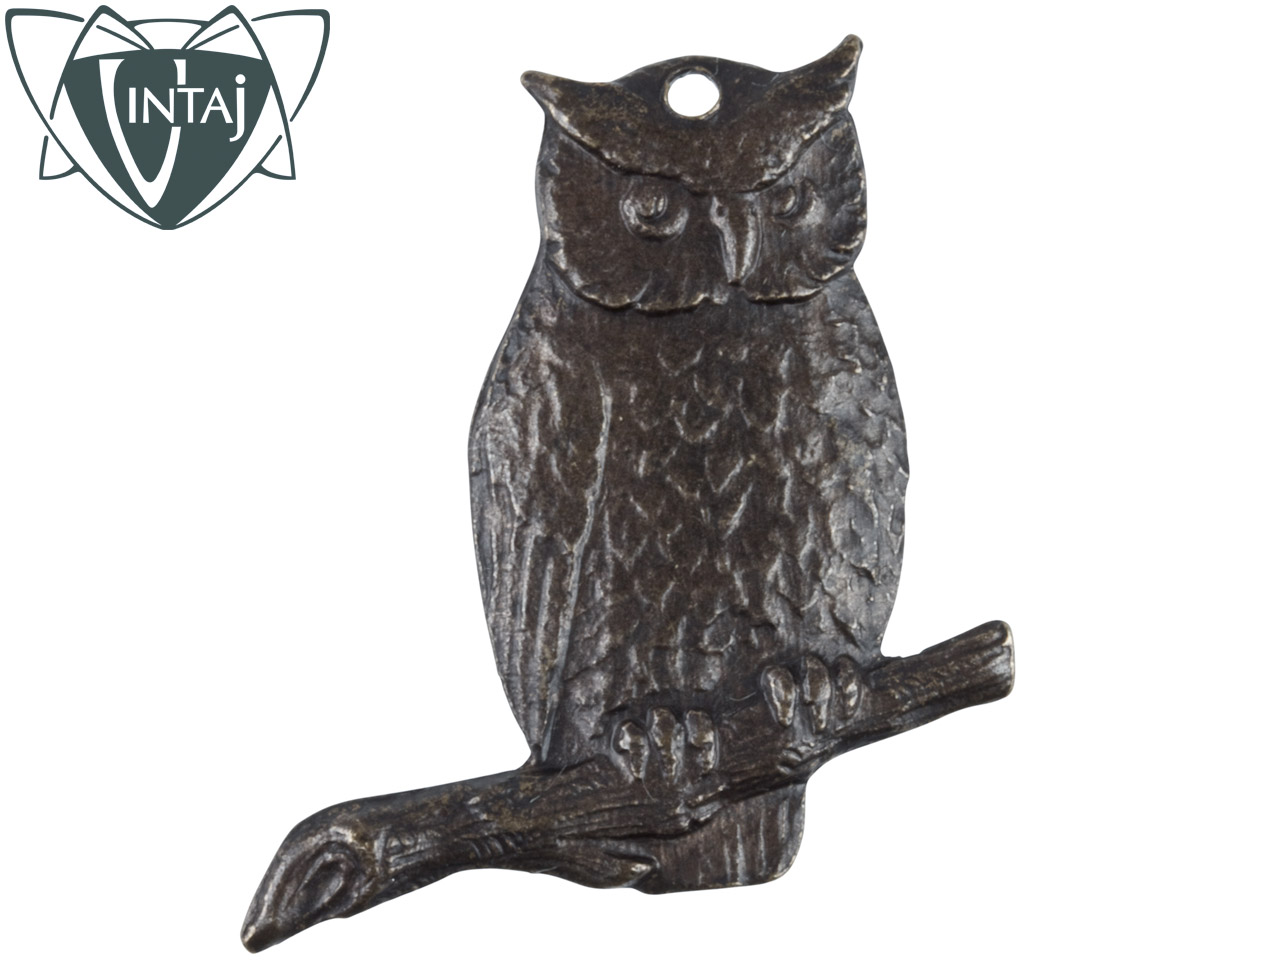 Vintaj Brass Perching Owl